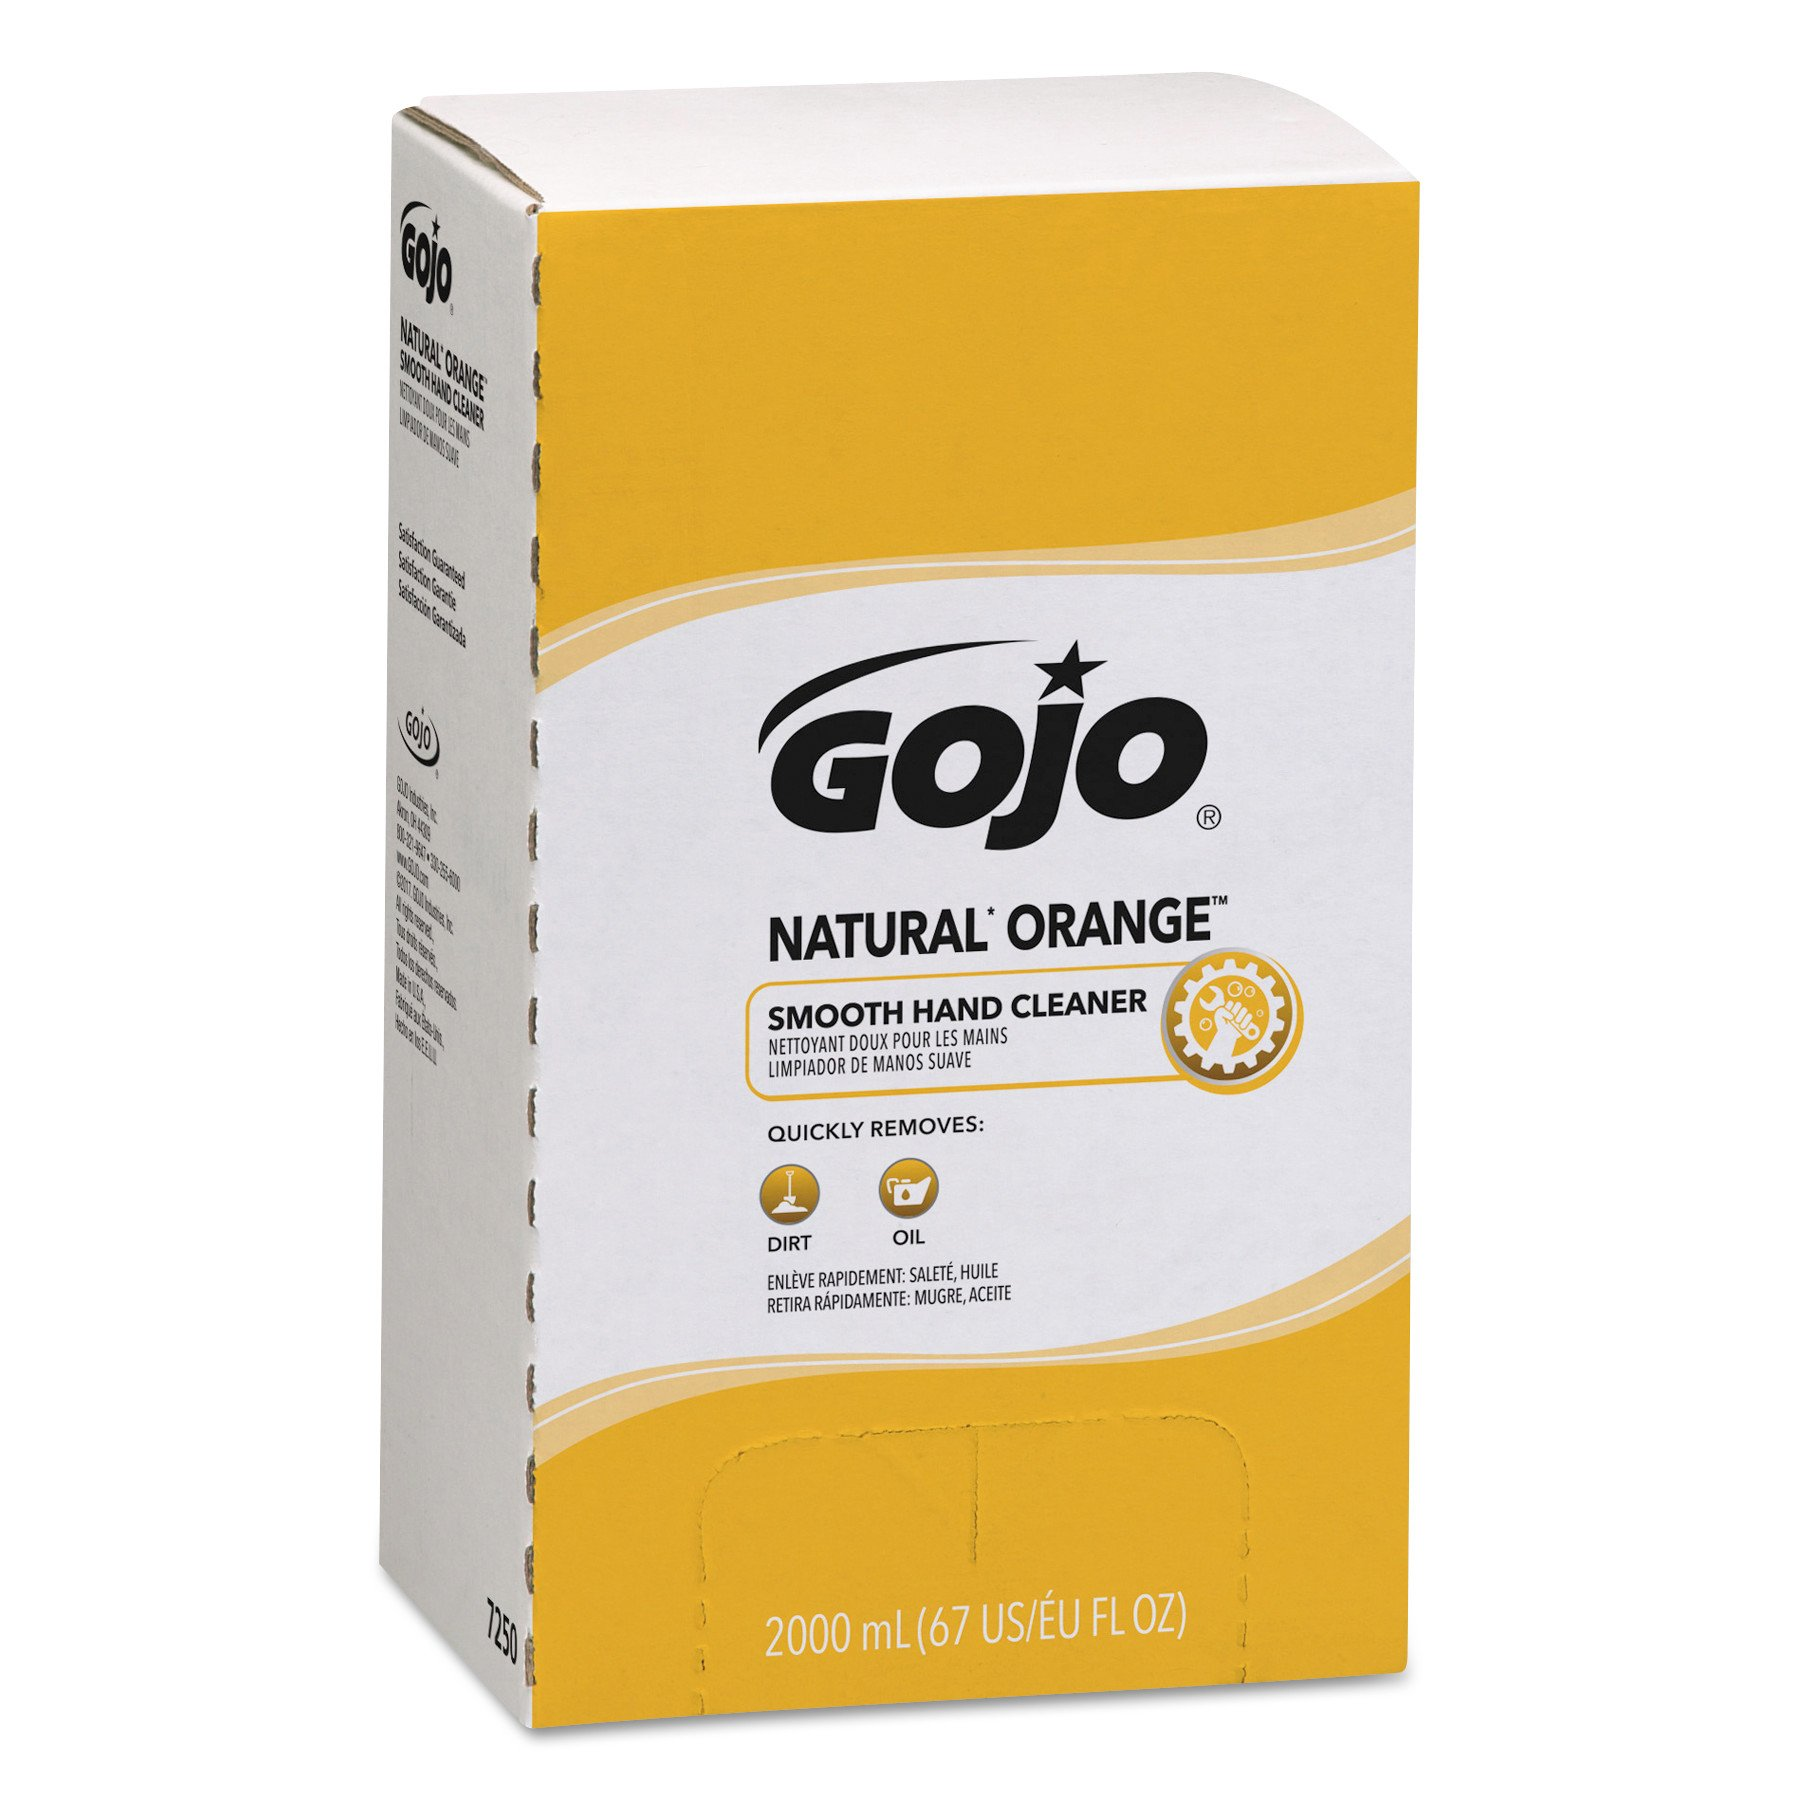 GOJO 7250 Natural Orange Smooth Lotion Hand Cleaner, 2000 ml Bag-in-Box Refill (Case of 4)